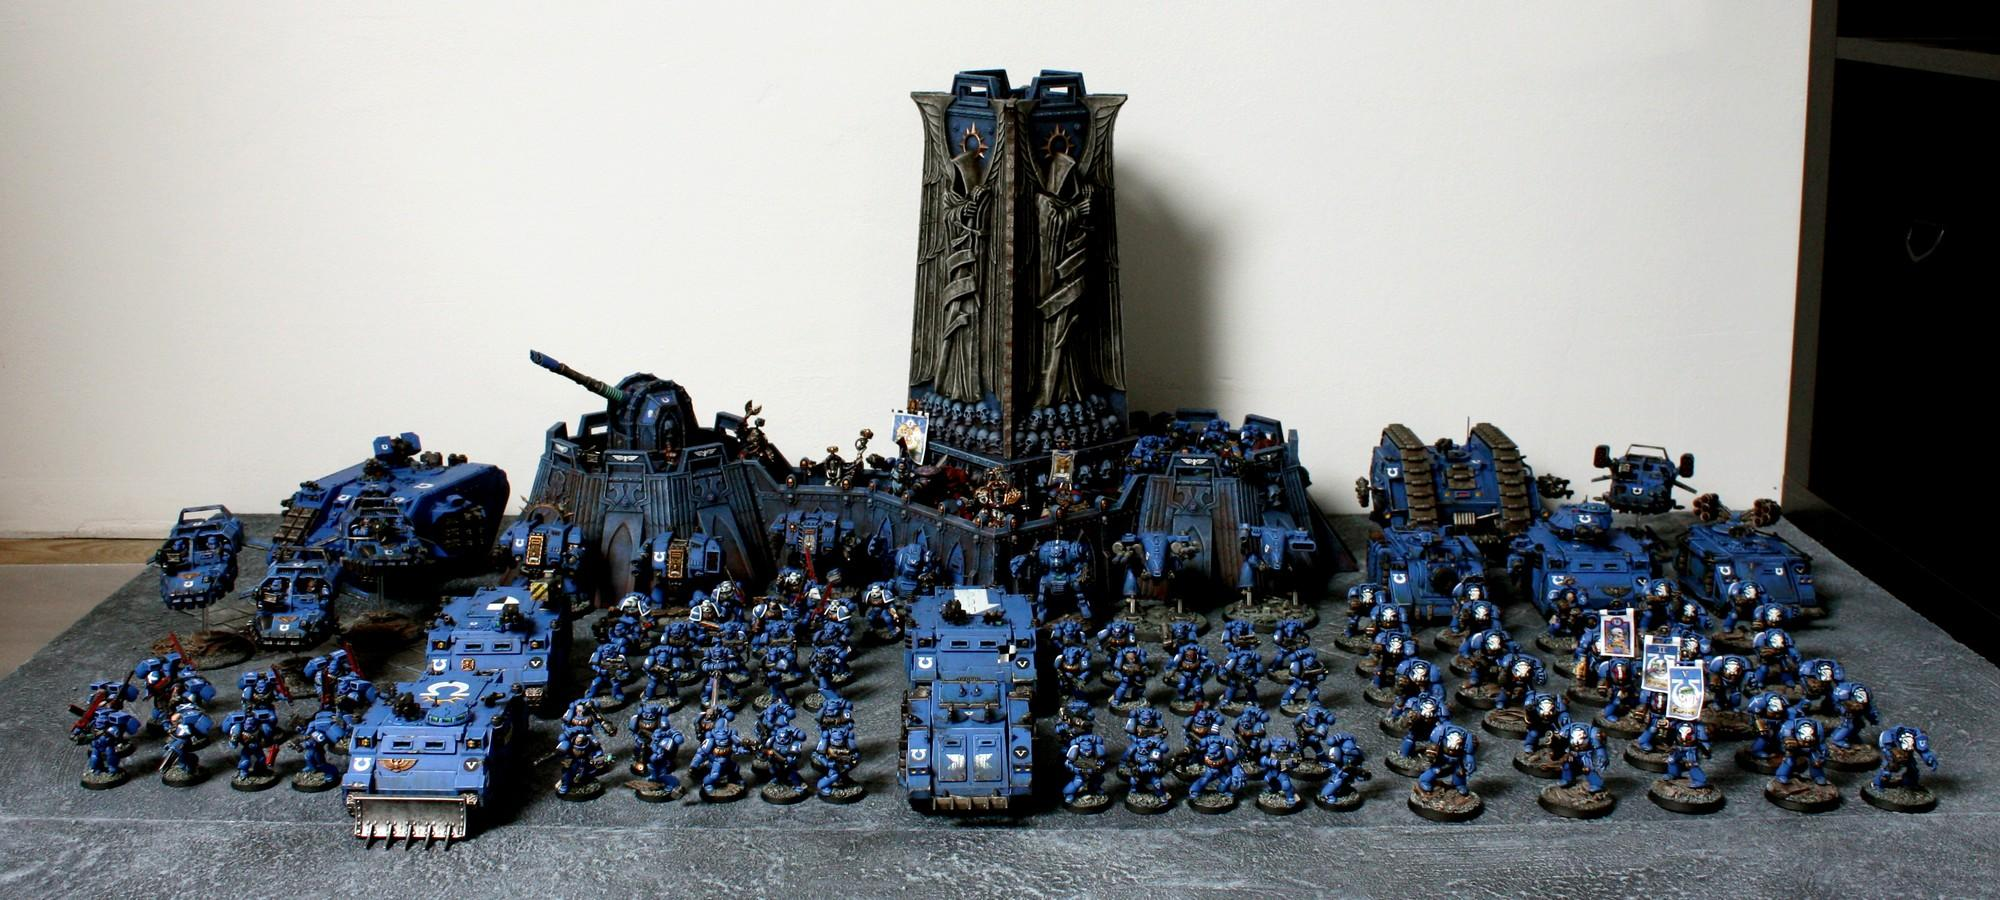 Ultramarines Army Minus' mini...